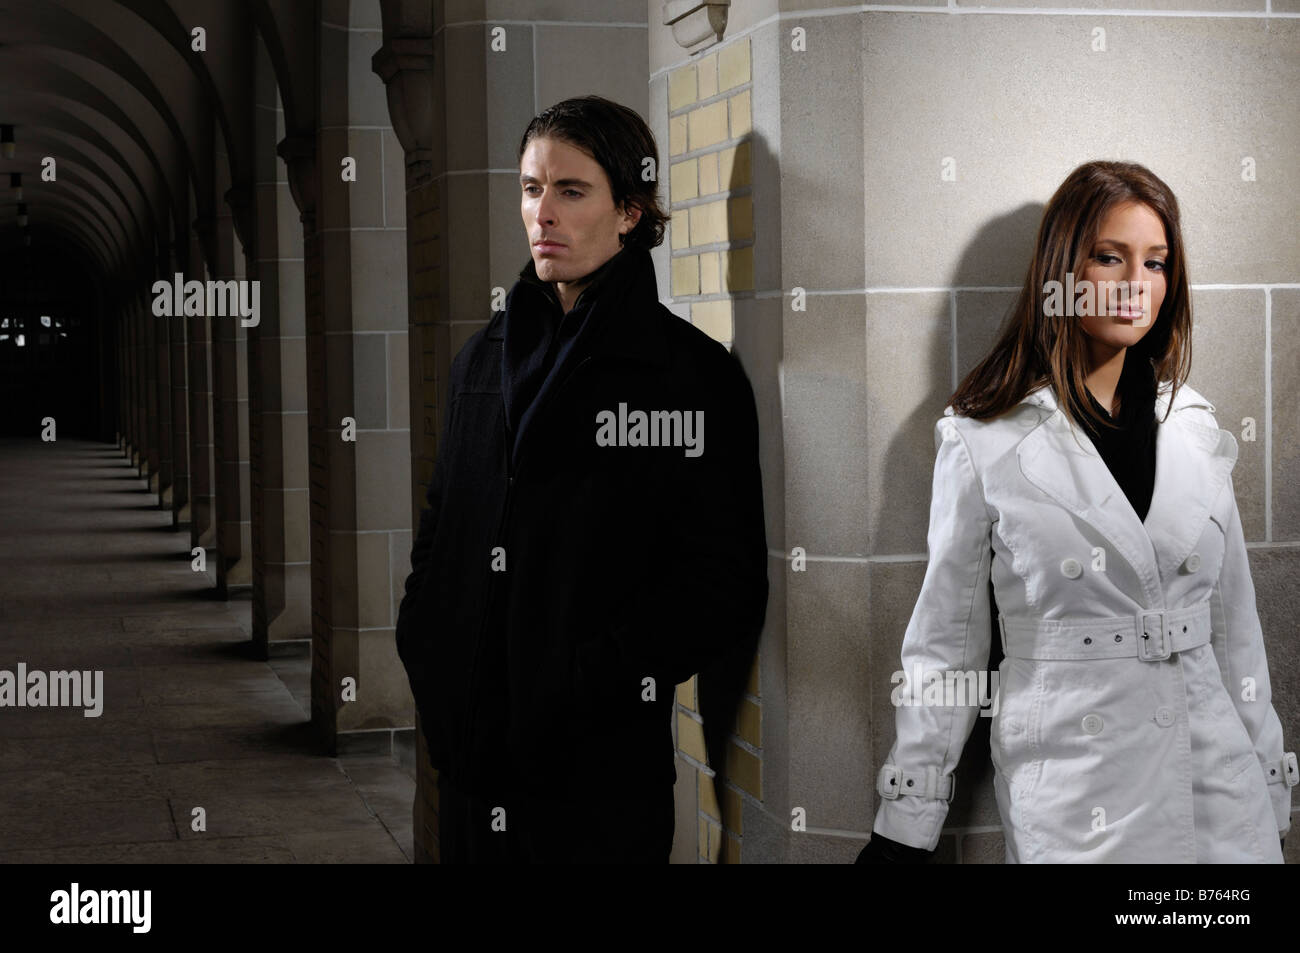 Young man and woman standing apart - Stock Image